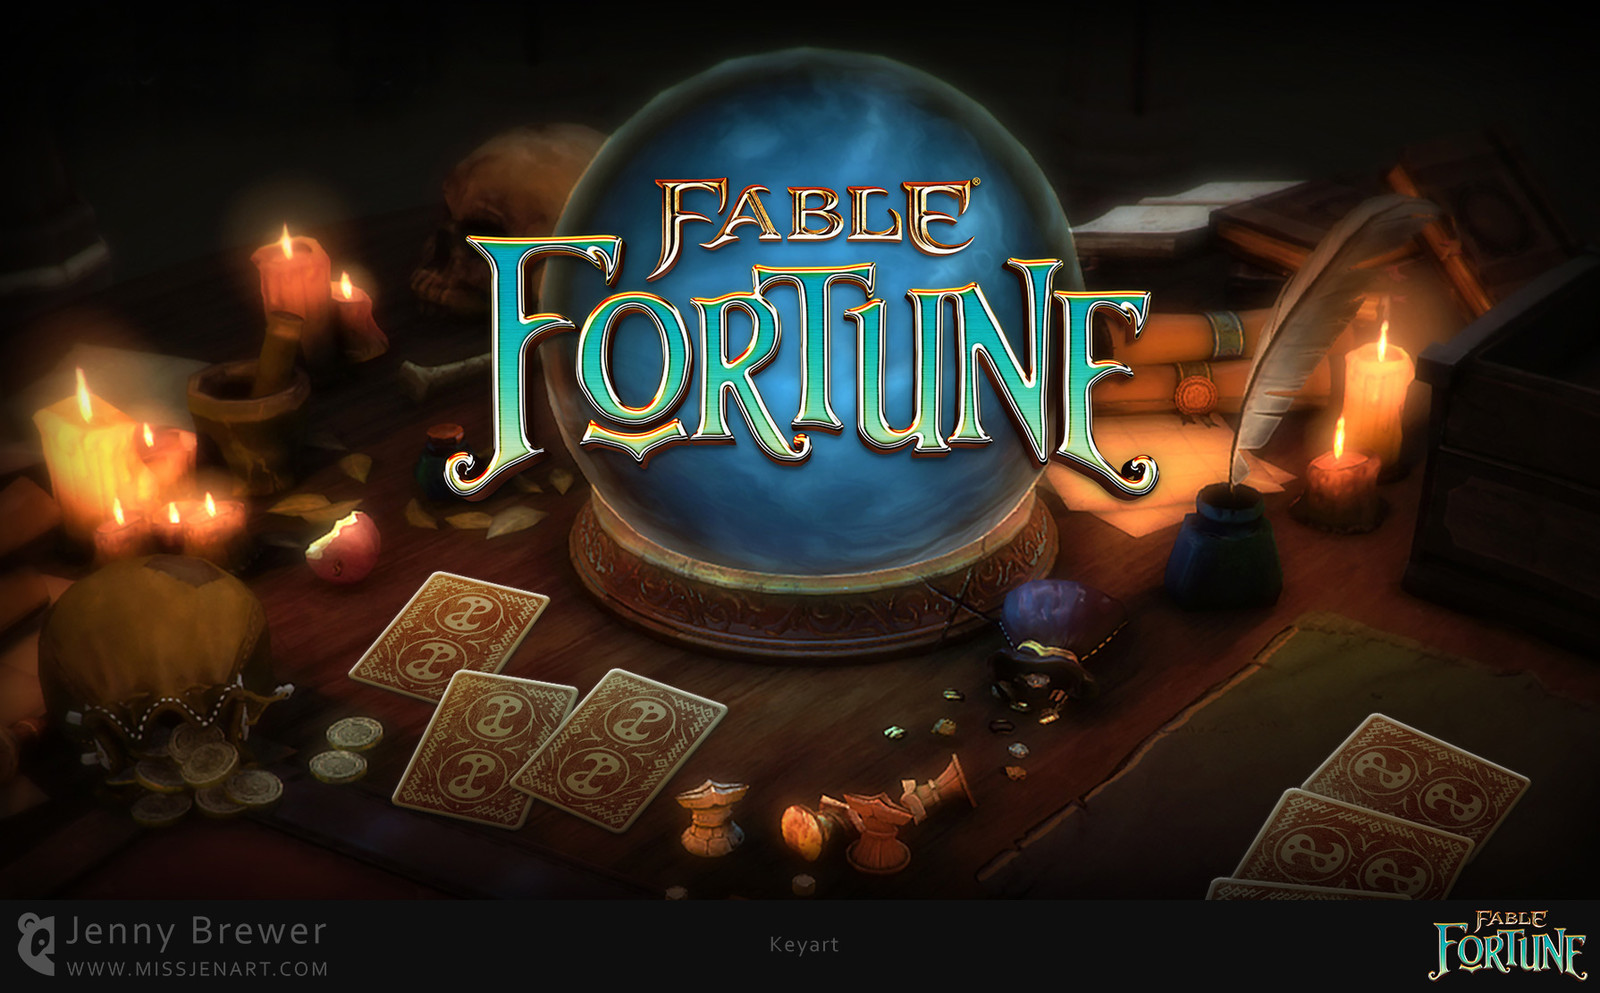 The menu set the mood of a fortune tellers table top very well, I worked up the scene in Photoshop to create the key art which was used as the key art for marketing the game.